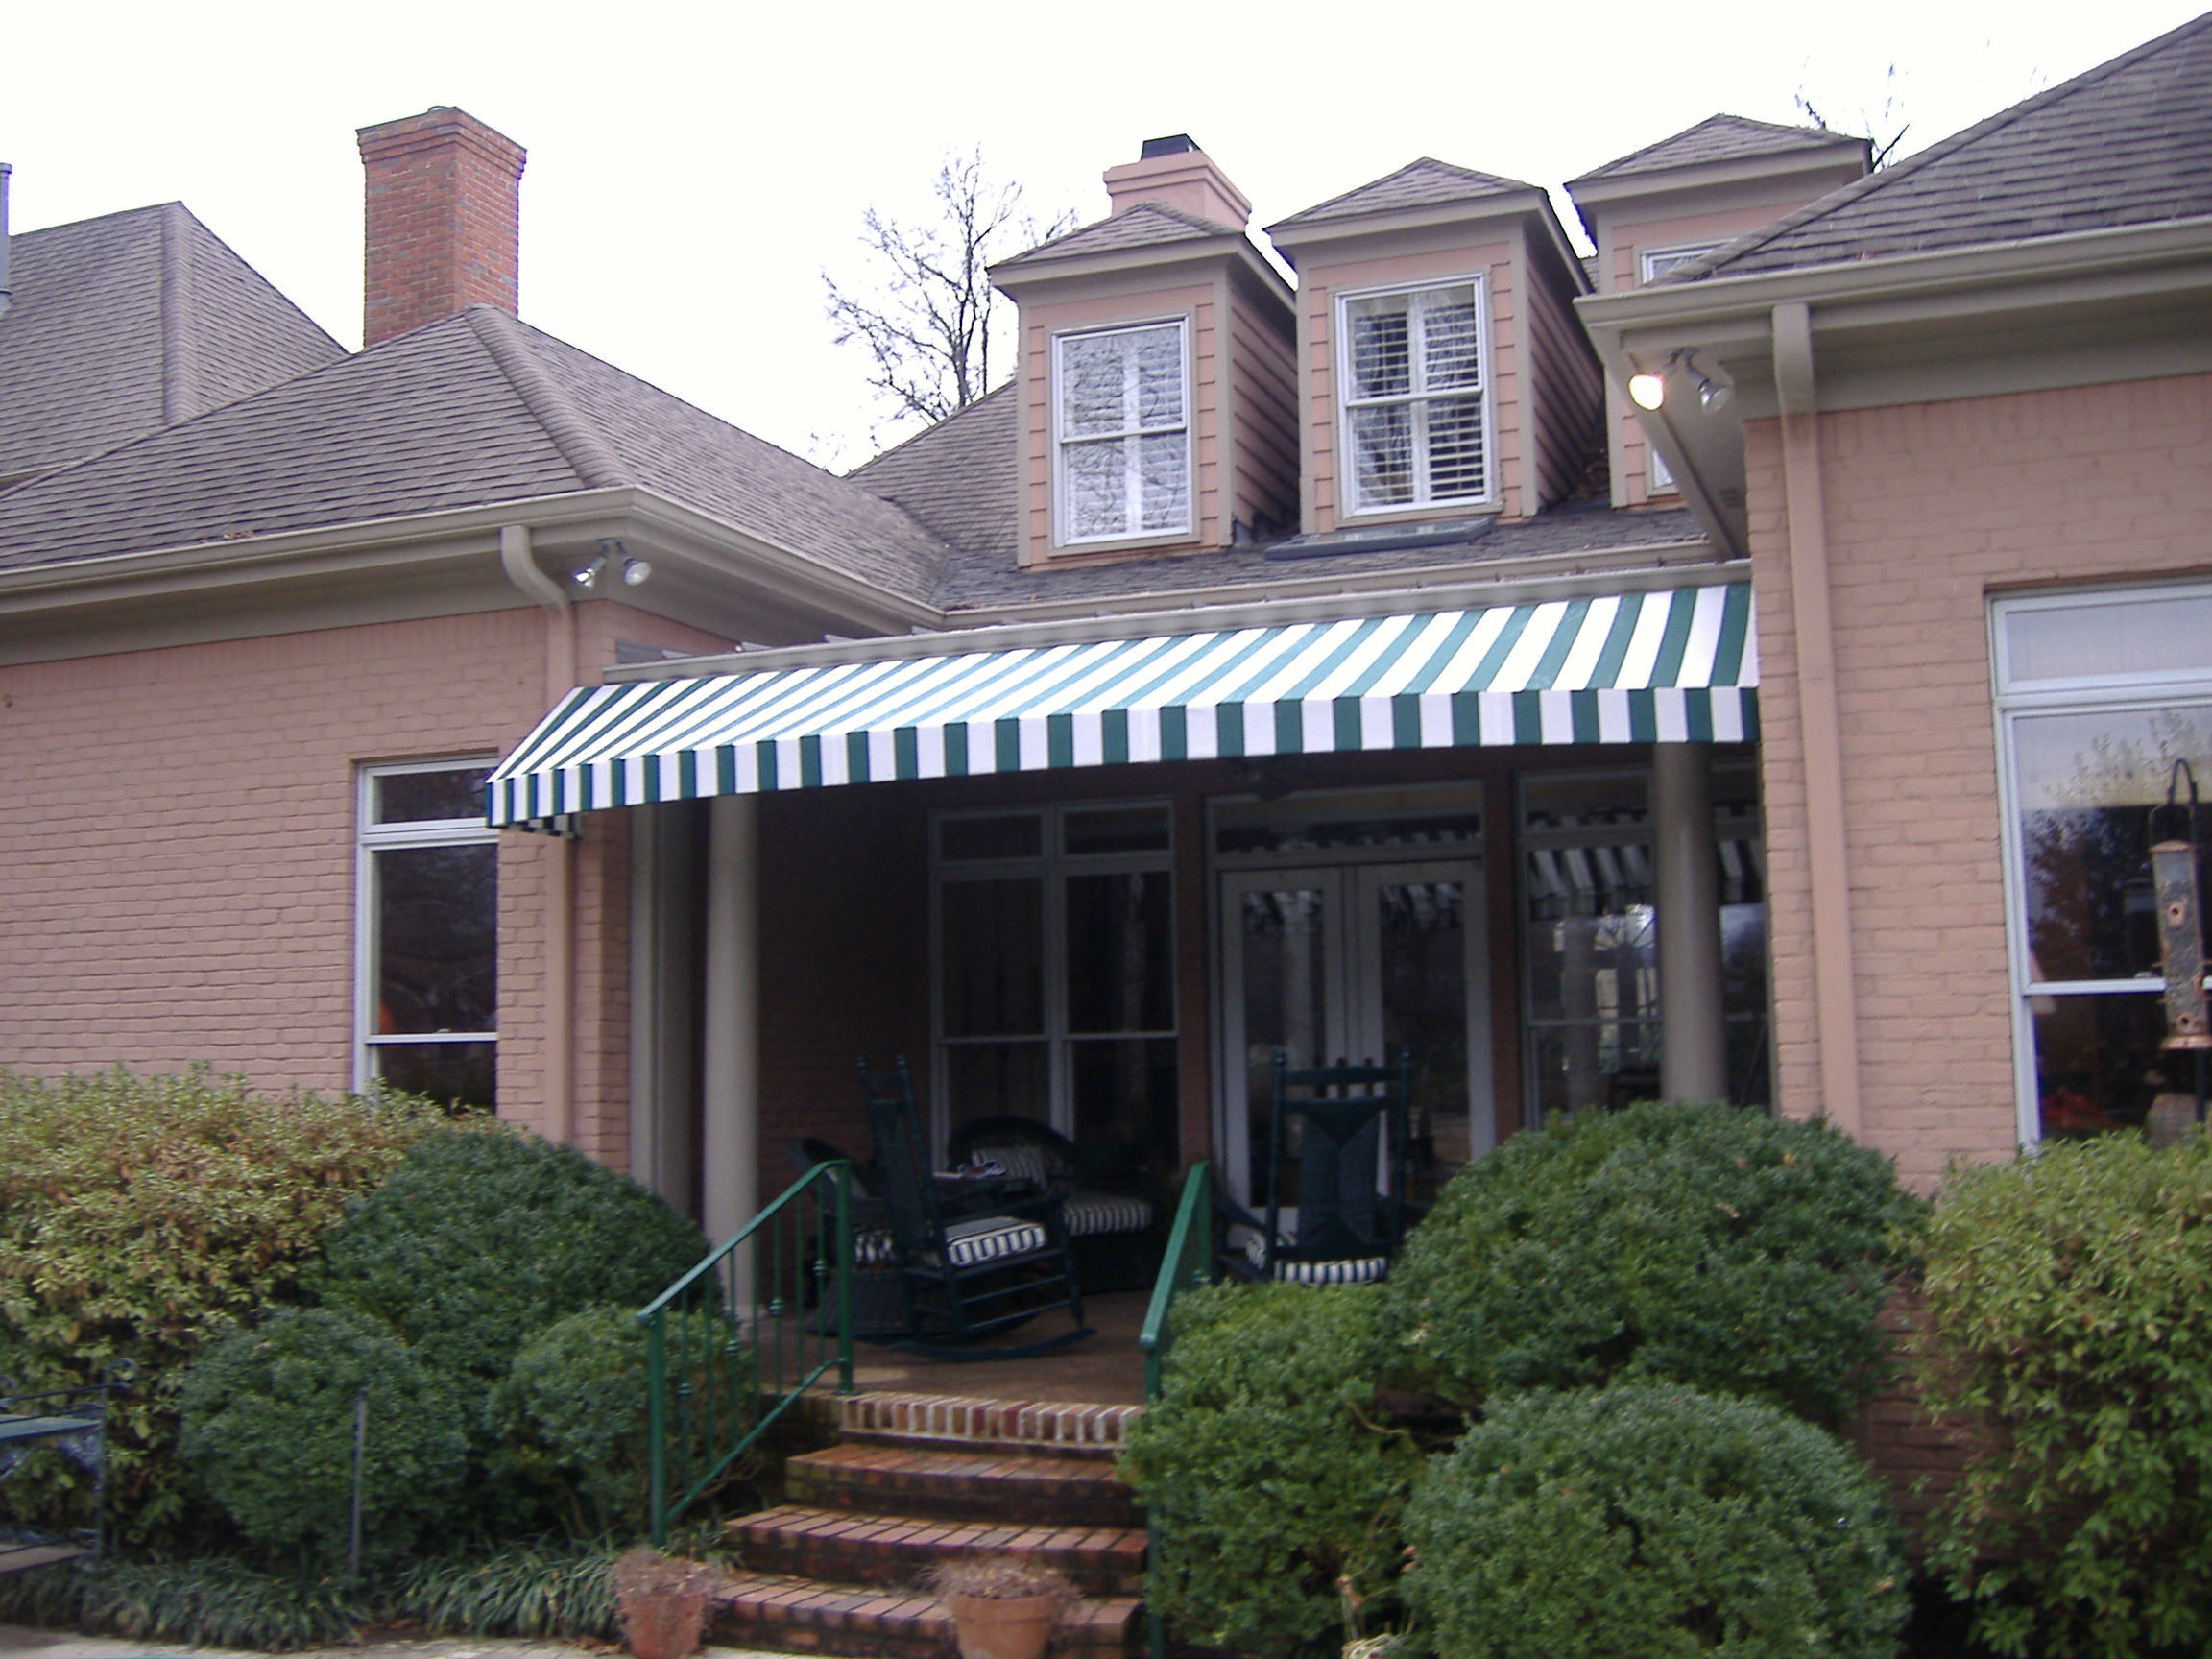 Residential Awning Residential Awnings Delta Tent Awning